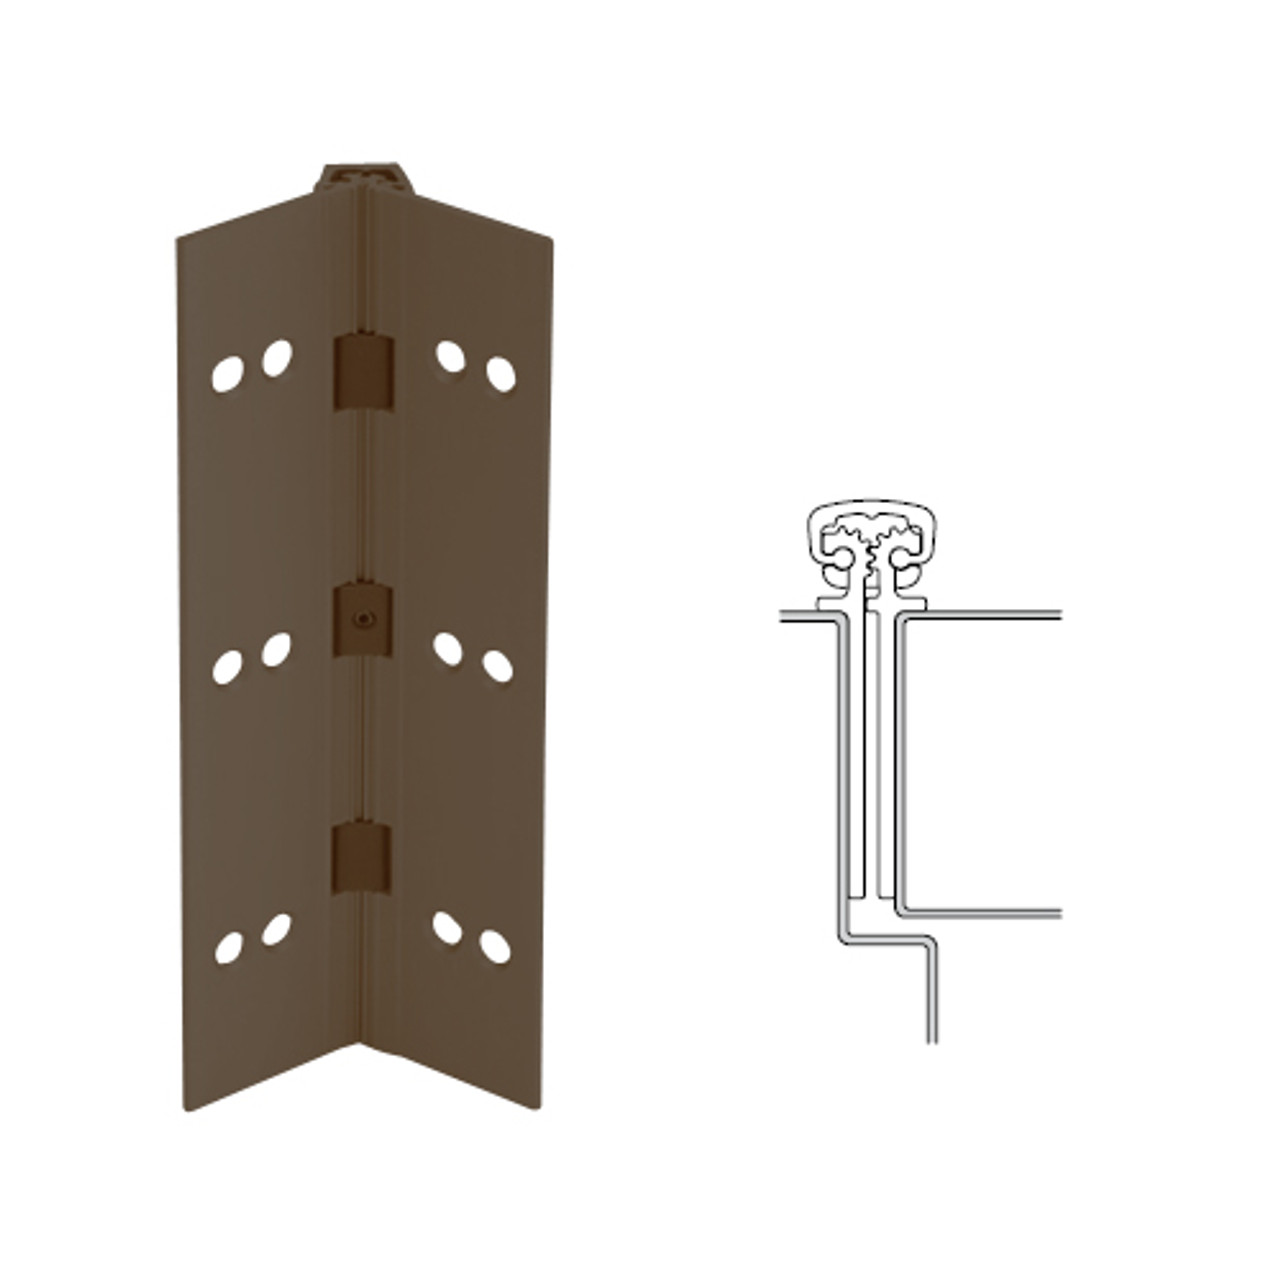 027XY-313AN-85-SECHM IVES Full Mortise Continuous Geared Hinges with Security Screws - Hex Pin Drive in Dark Bronze Anodized